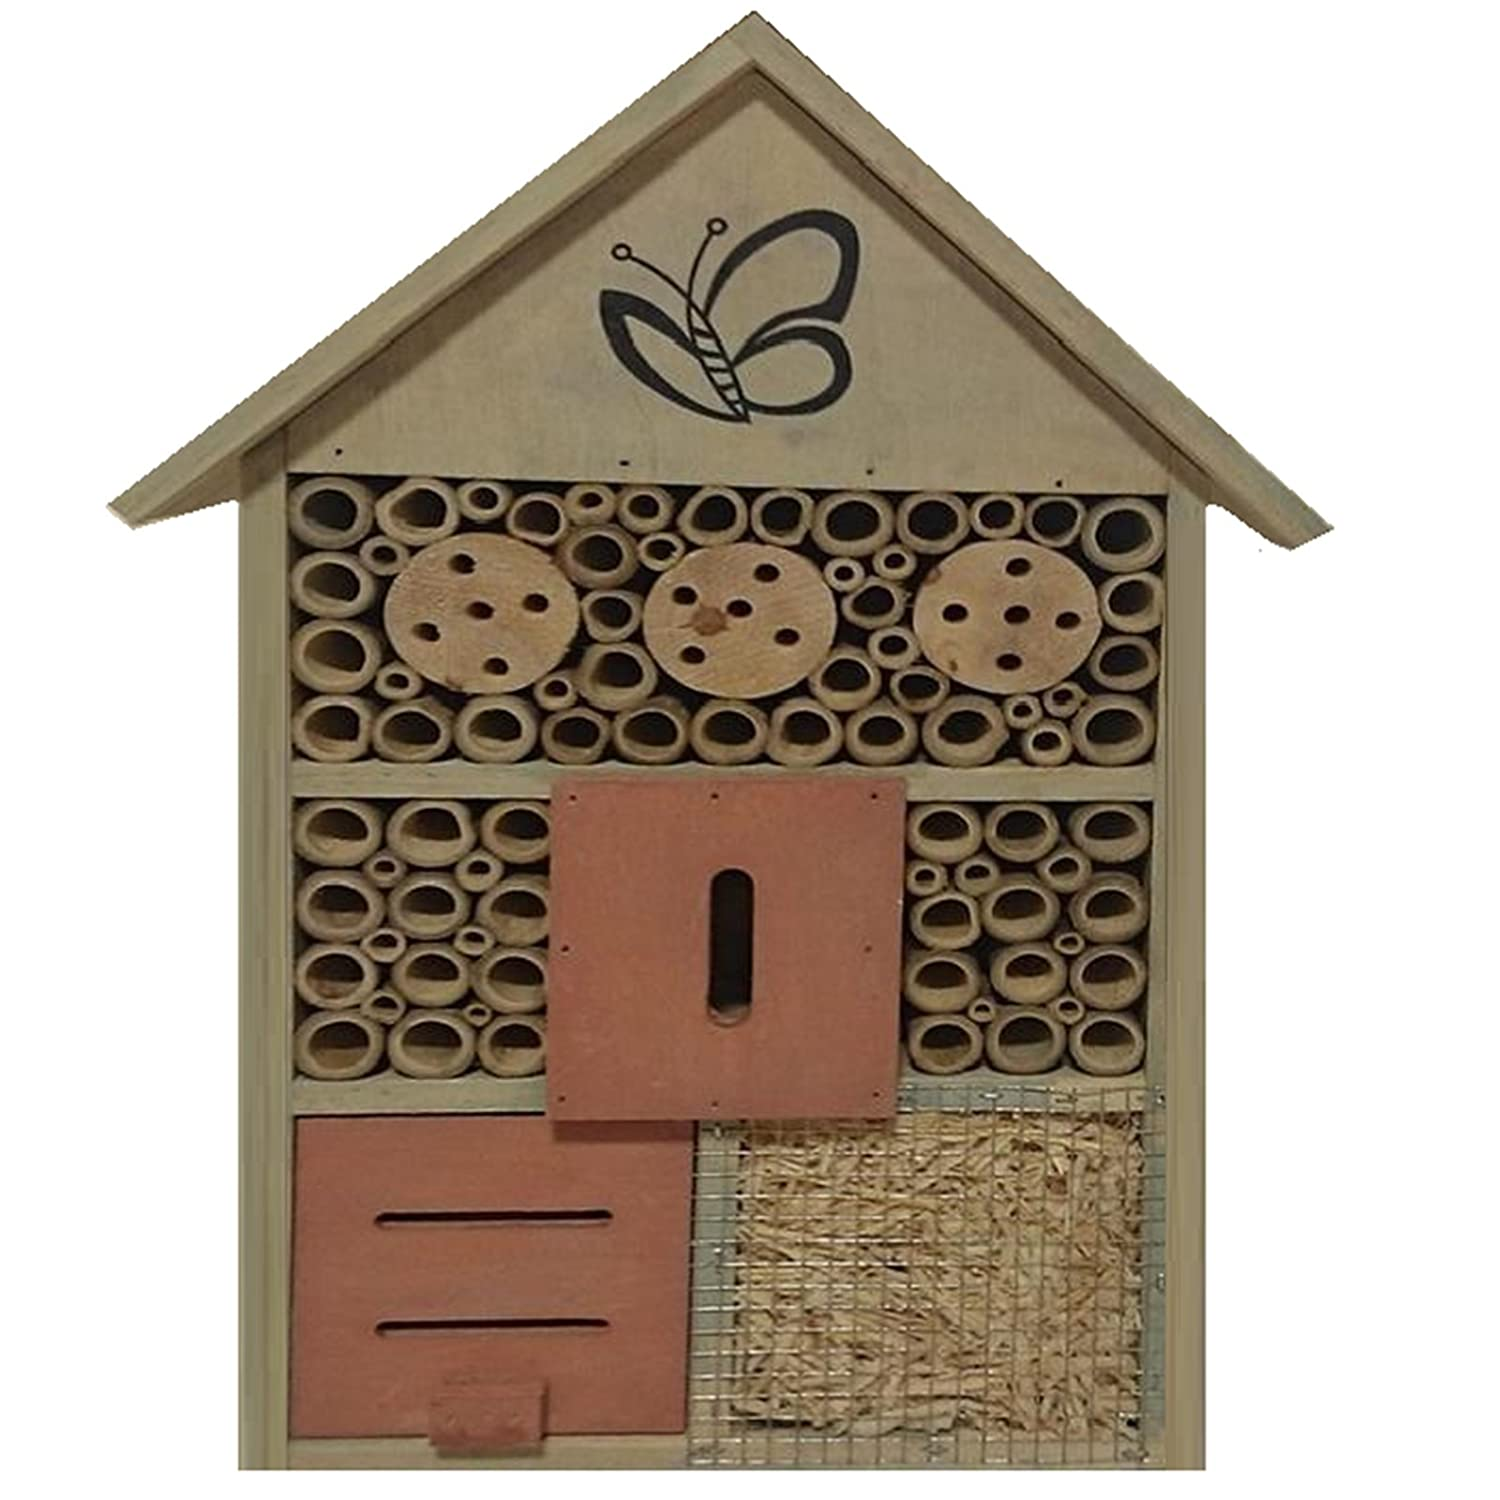 WOODEN LARGE INSECT BUGS GARDEN HANGING HOTEL HOME BEES LADYBIRD NEST BOX HOUSE INSECT HOTEL